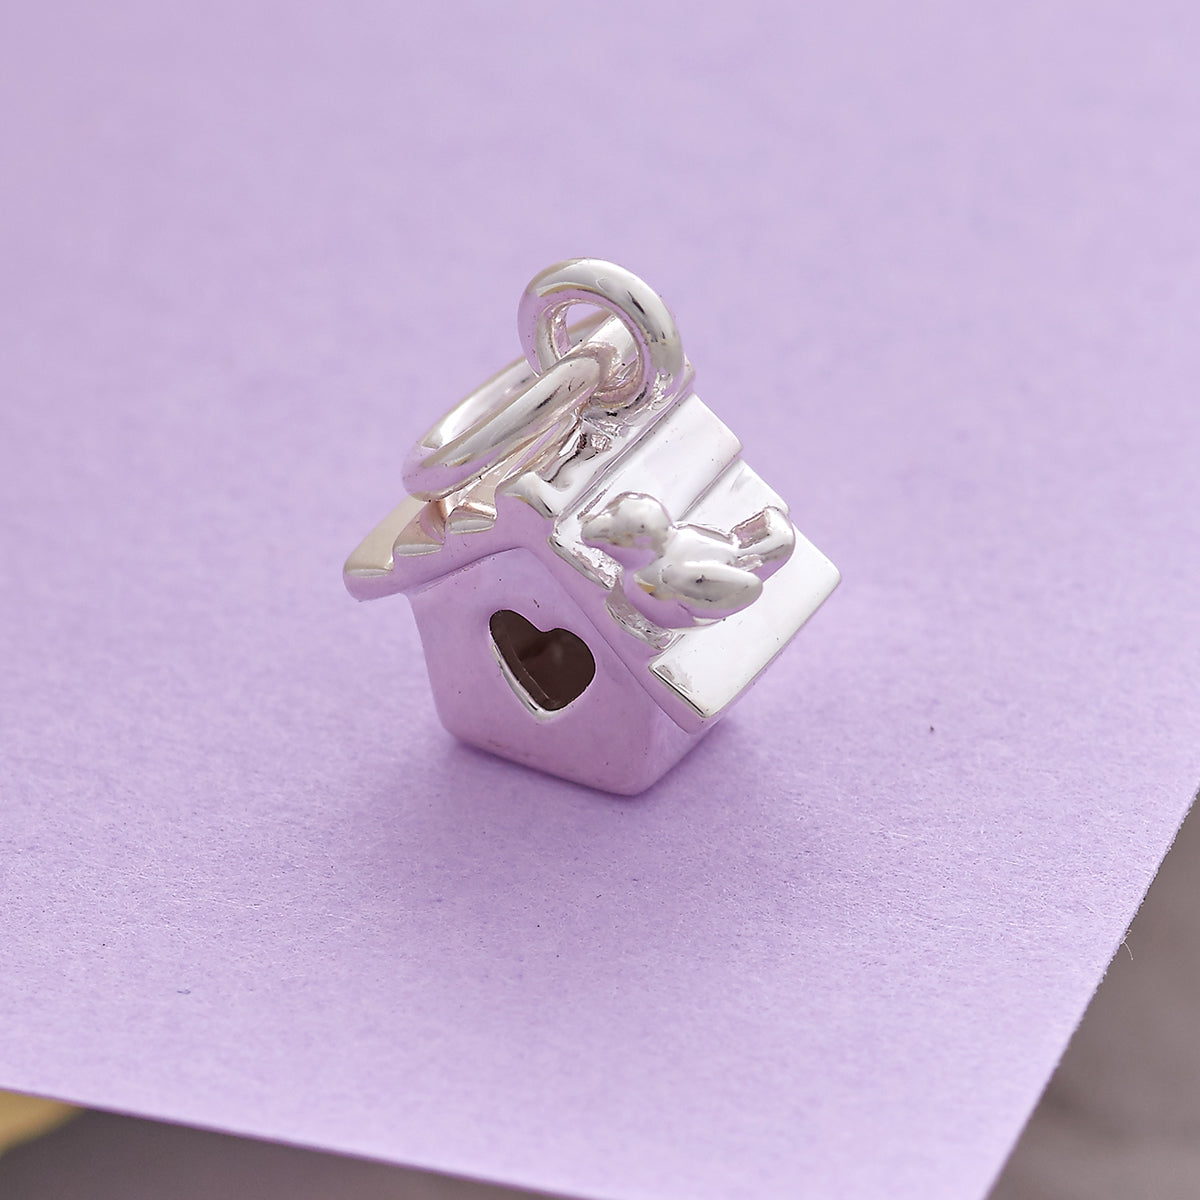 solid silver bird house charm with a heart shaped door and tiny bird FREE UK DELIVERY